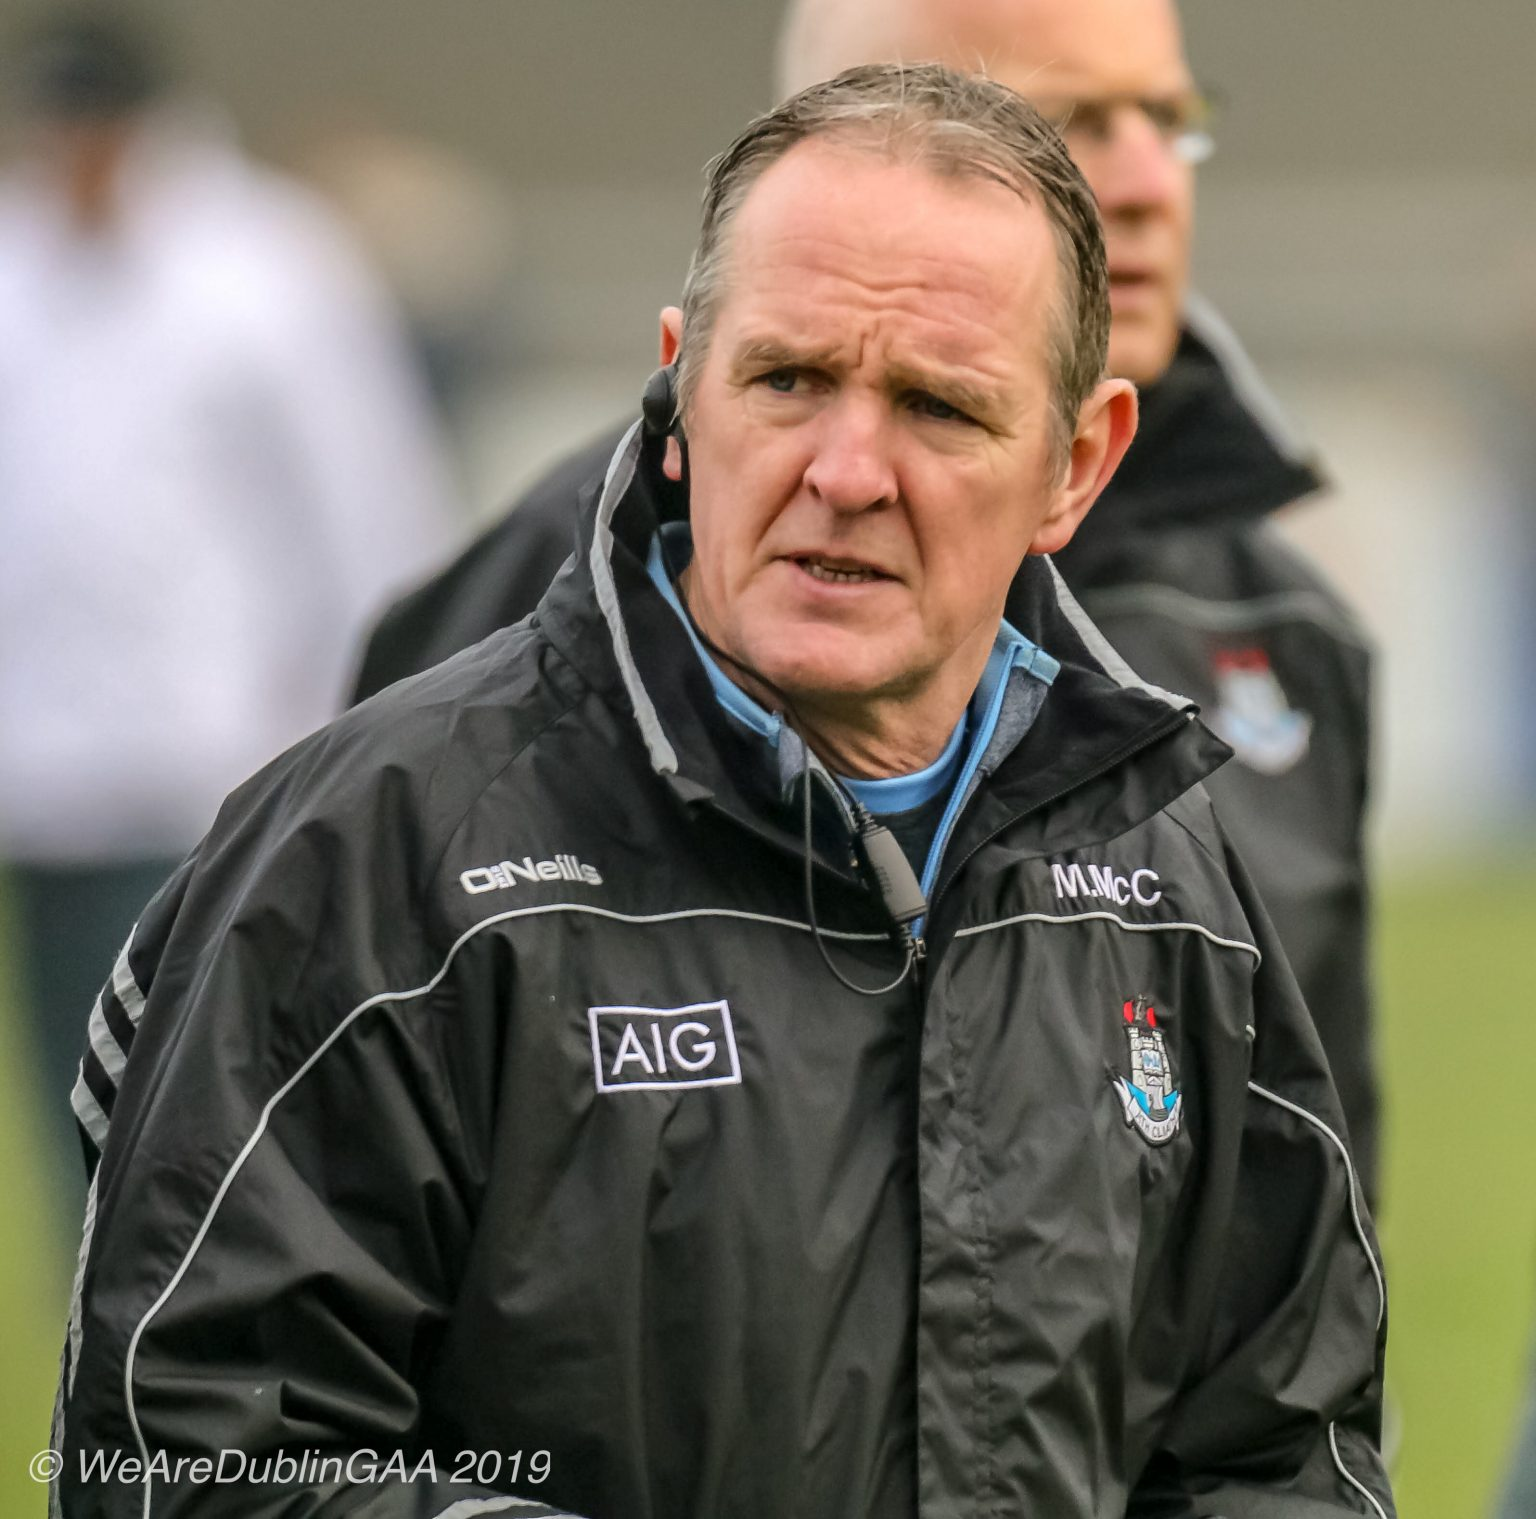 Dublin hurling manager Mattie Kenny in a black rain jacket with the Dublin and AIG crests on the chest has injury concerns ahead of his sides opening Leinster championship game against Kilkenny